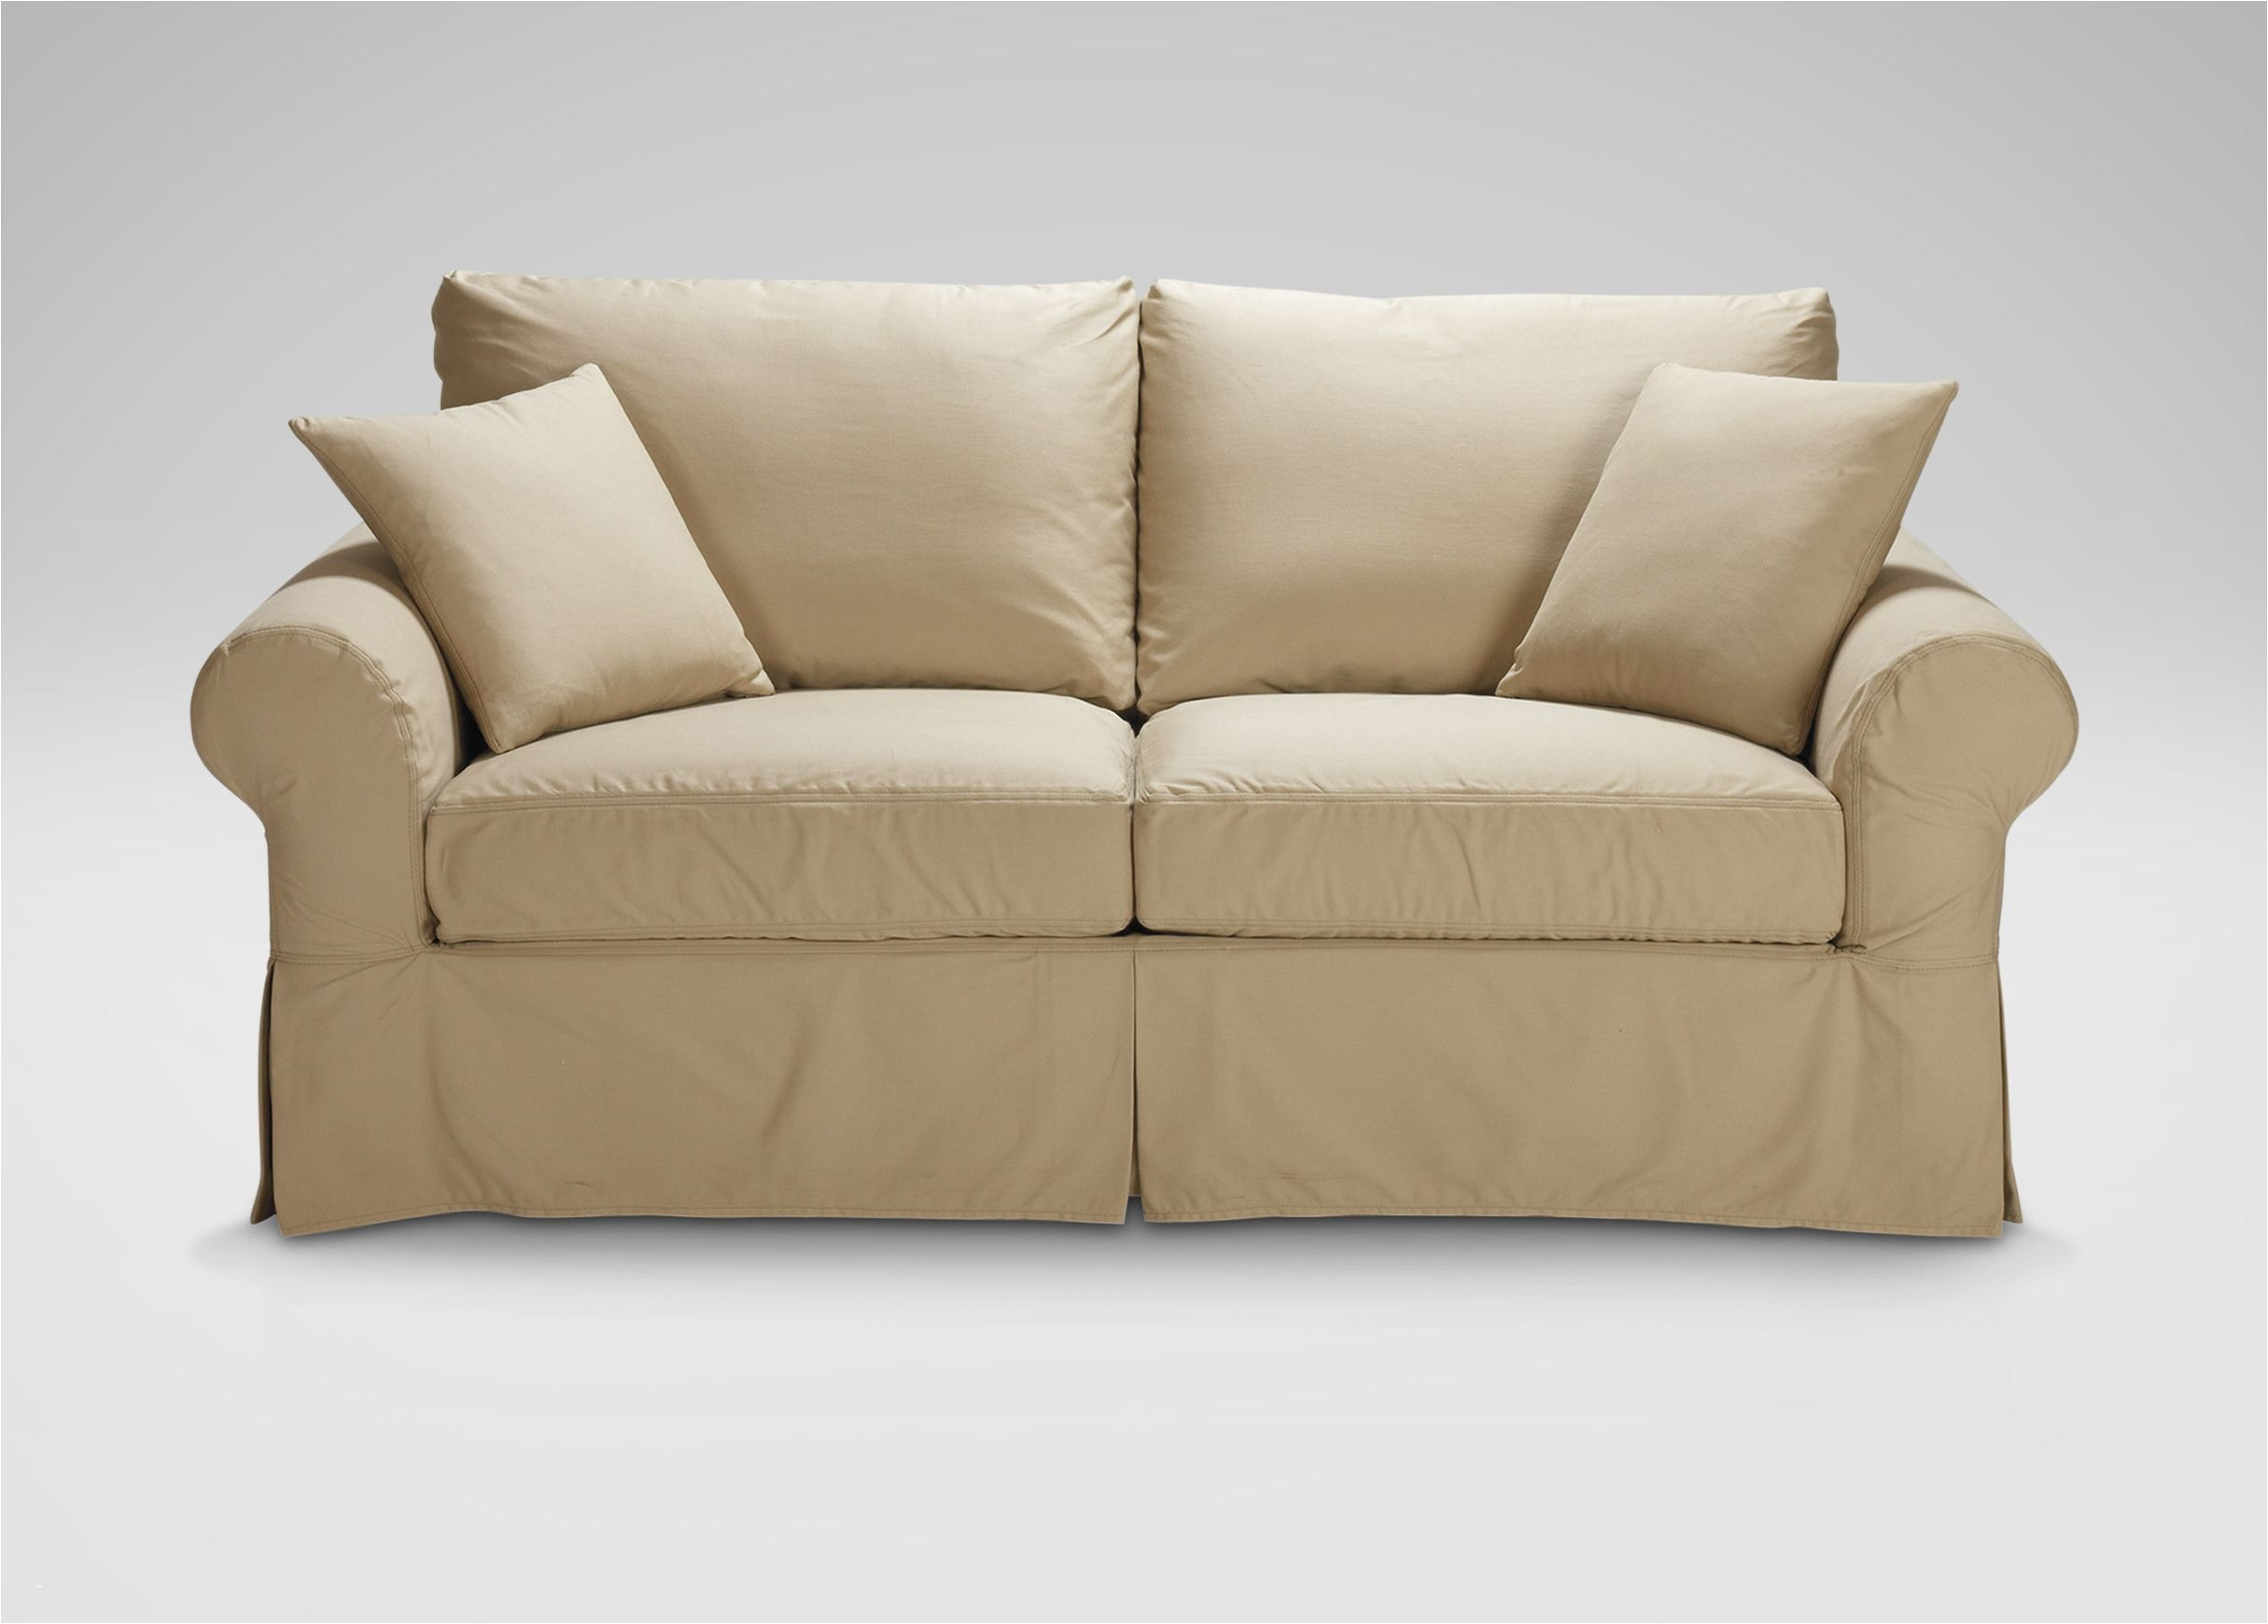 26 beautiful english roll arm sofa tight back images